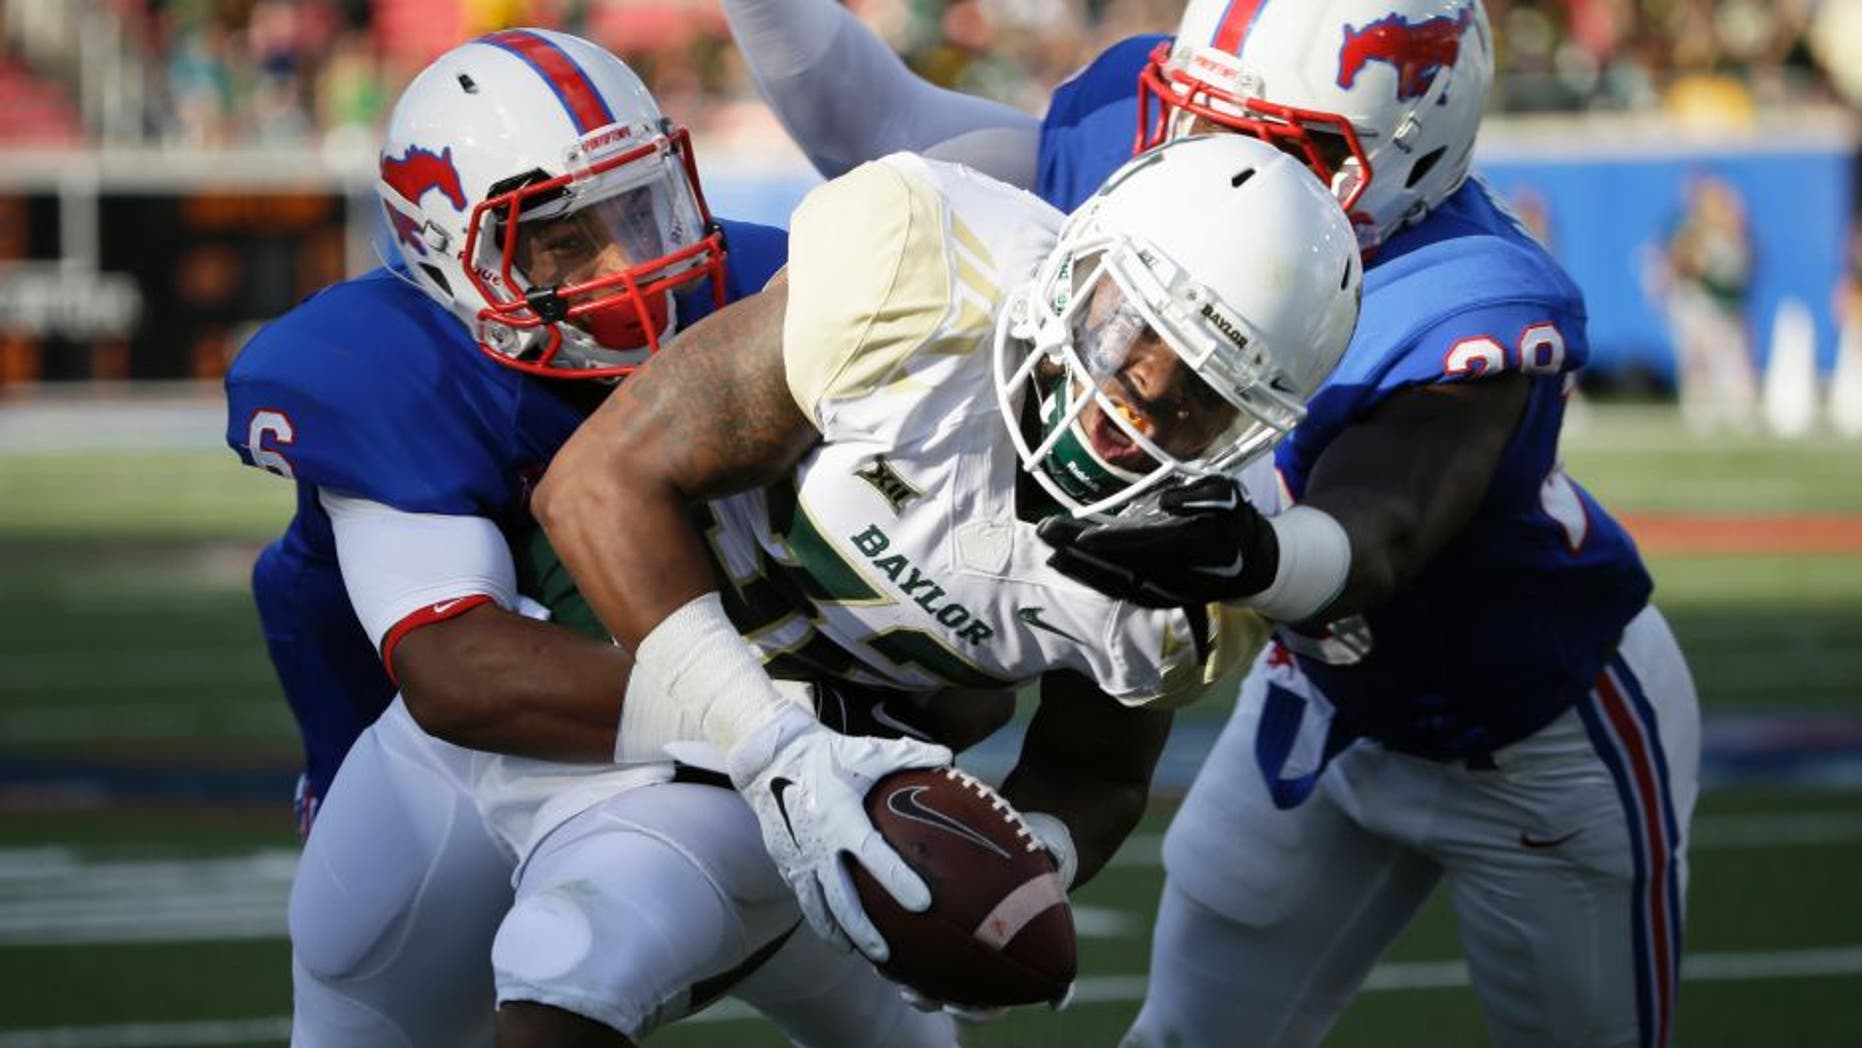 Baylor running back Shock Linwood (32) runs against SMU defenders Shakiel Randolph, right, and Jesse Montgomery (6) during the first half of an NCAA college football game Friday, Sept. 4, 2015, in Dallas. (AP Photo/LM Otero)